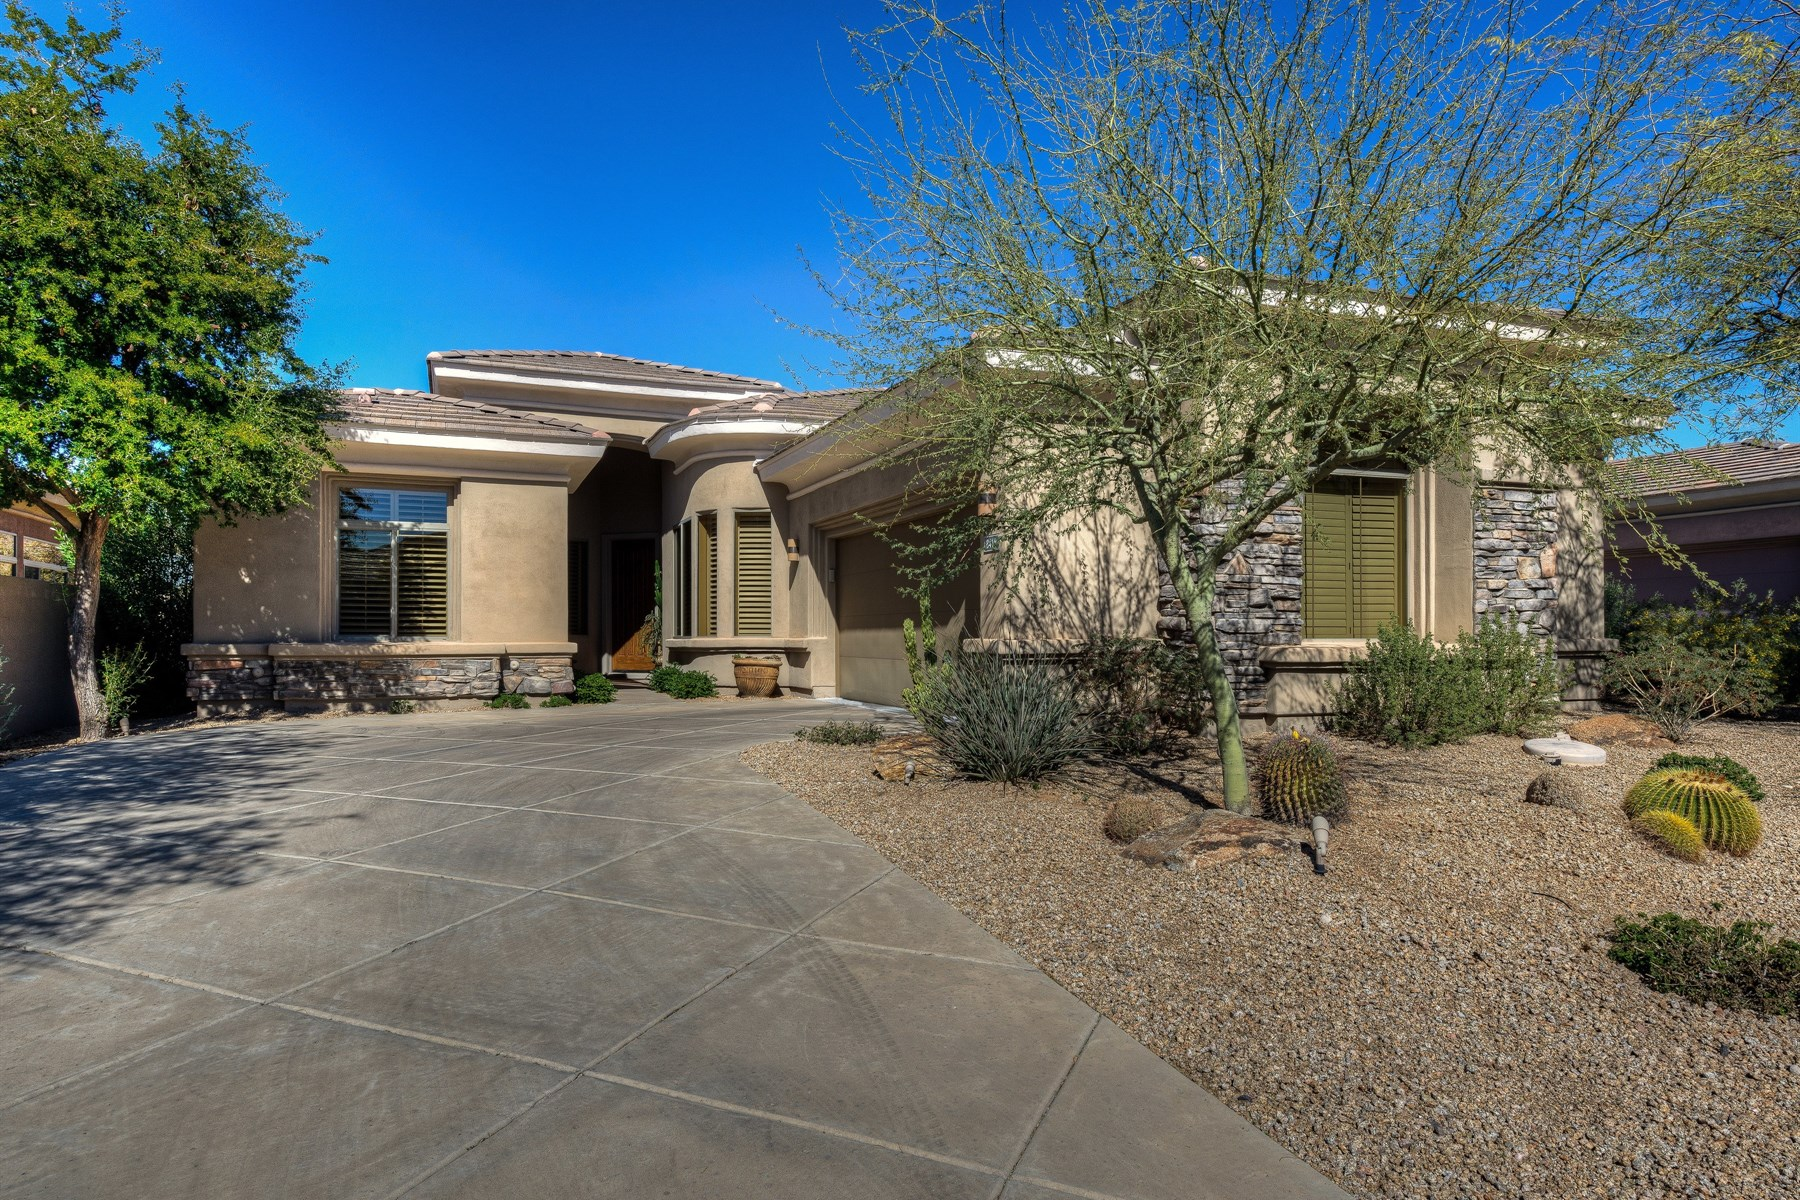 Single Family Home for Sale at Monterey home in the guard gated talon retreat at Grayhawk 8418 E Windrunner Dr Scottsdale, Arizona, 85255 United States